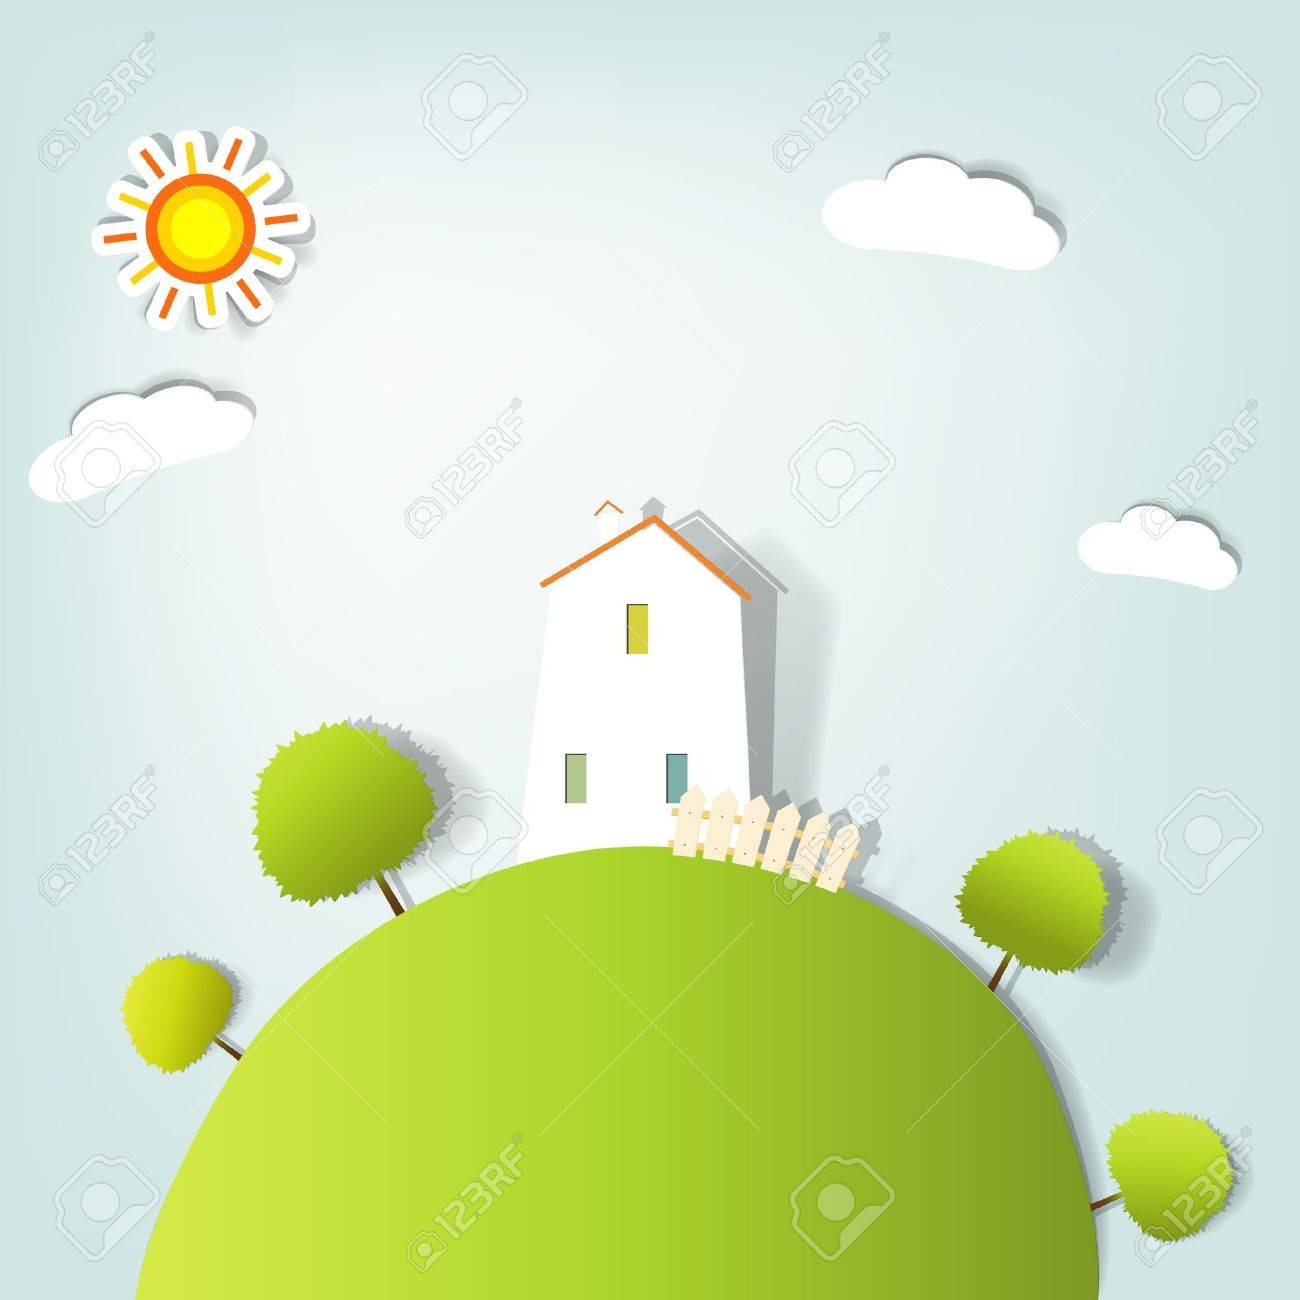 stylized landscape with a house on the hill - 10566053